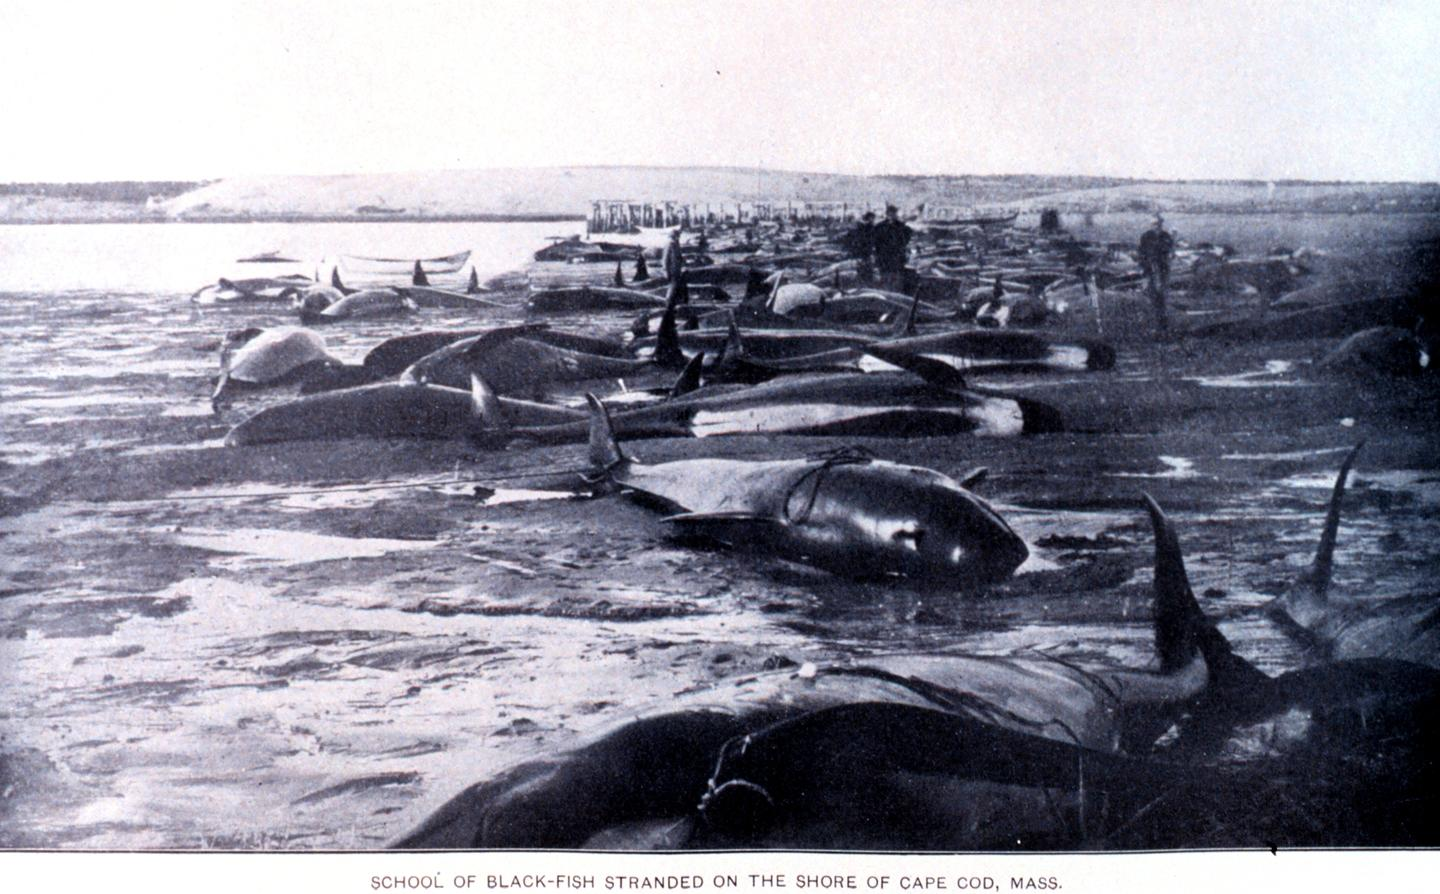 A mass stranding of Blackfish on the shore of Cape Cod, Massachusetts around the turn of the 20th century